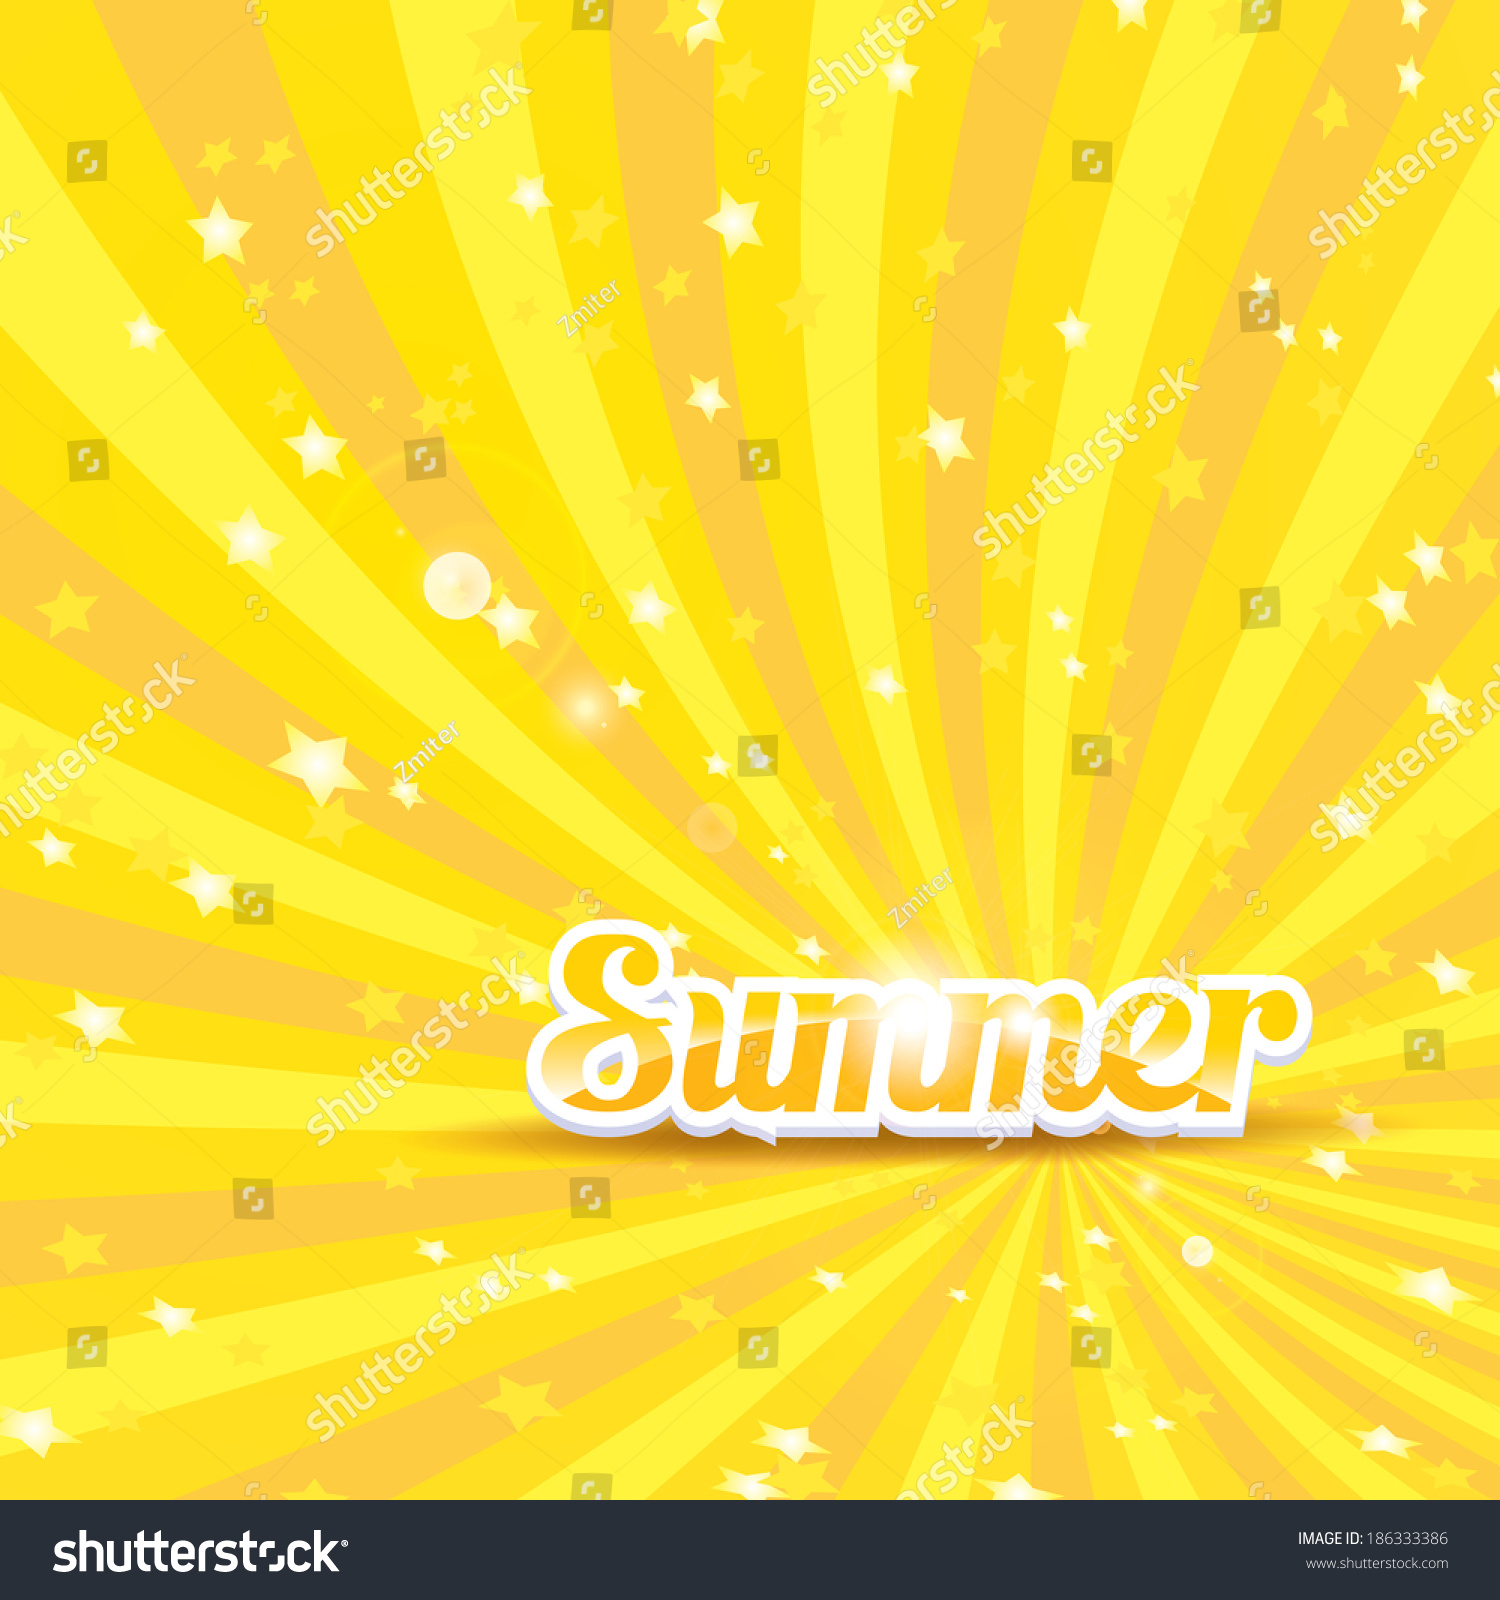 Background image word - Abstract Summer Vector Rays Background With Word Summer Summer Grunge Shiny Illustration